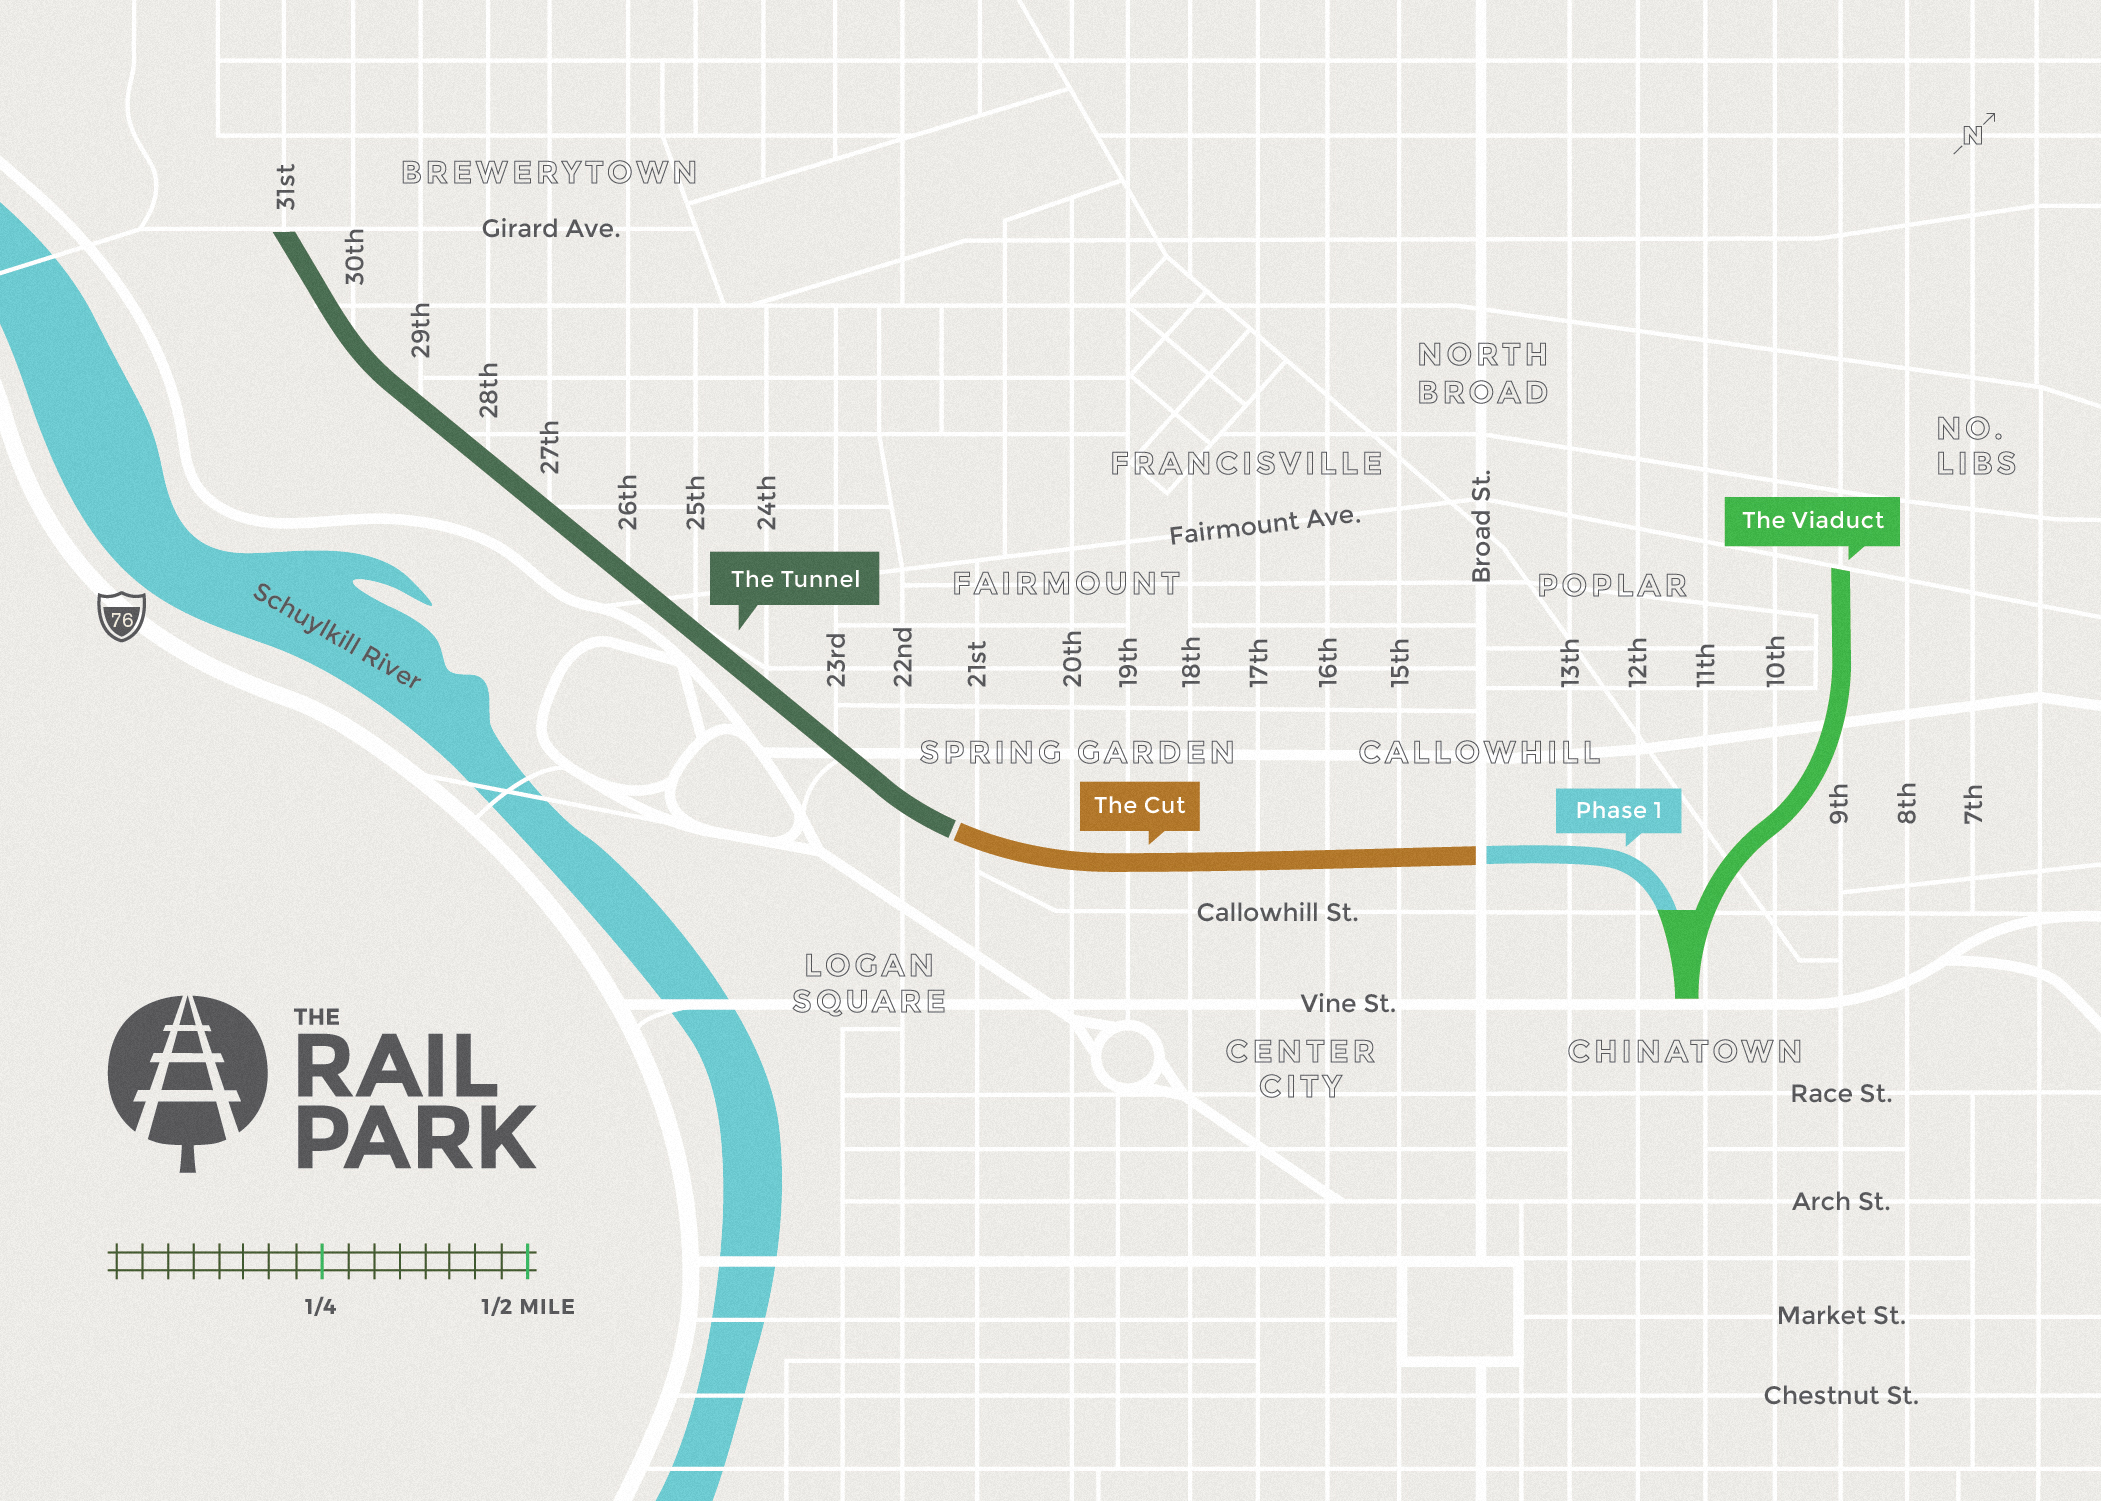 The Park Friends Of The Rail Park - Philly train map